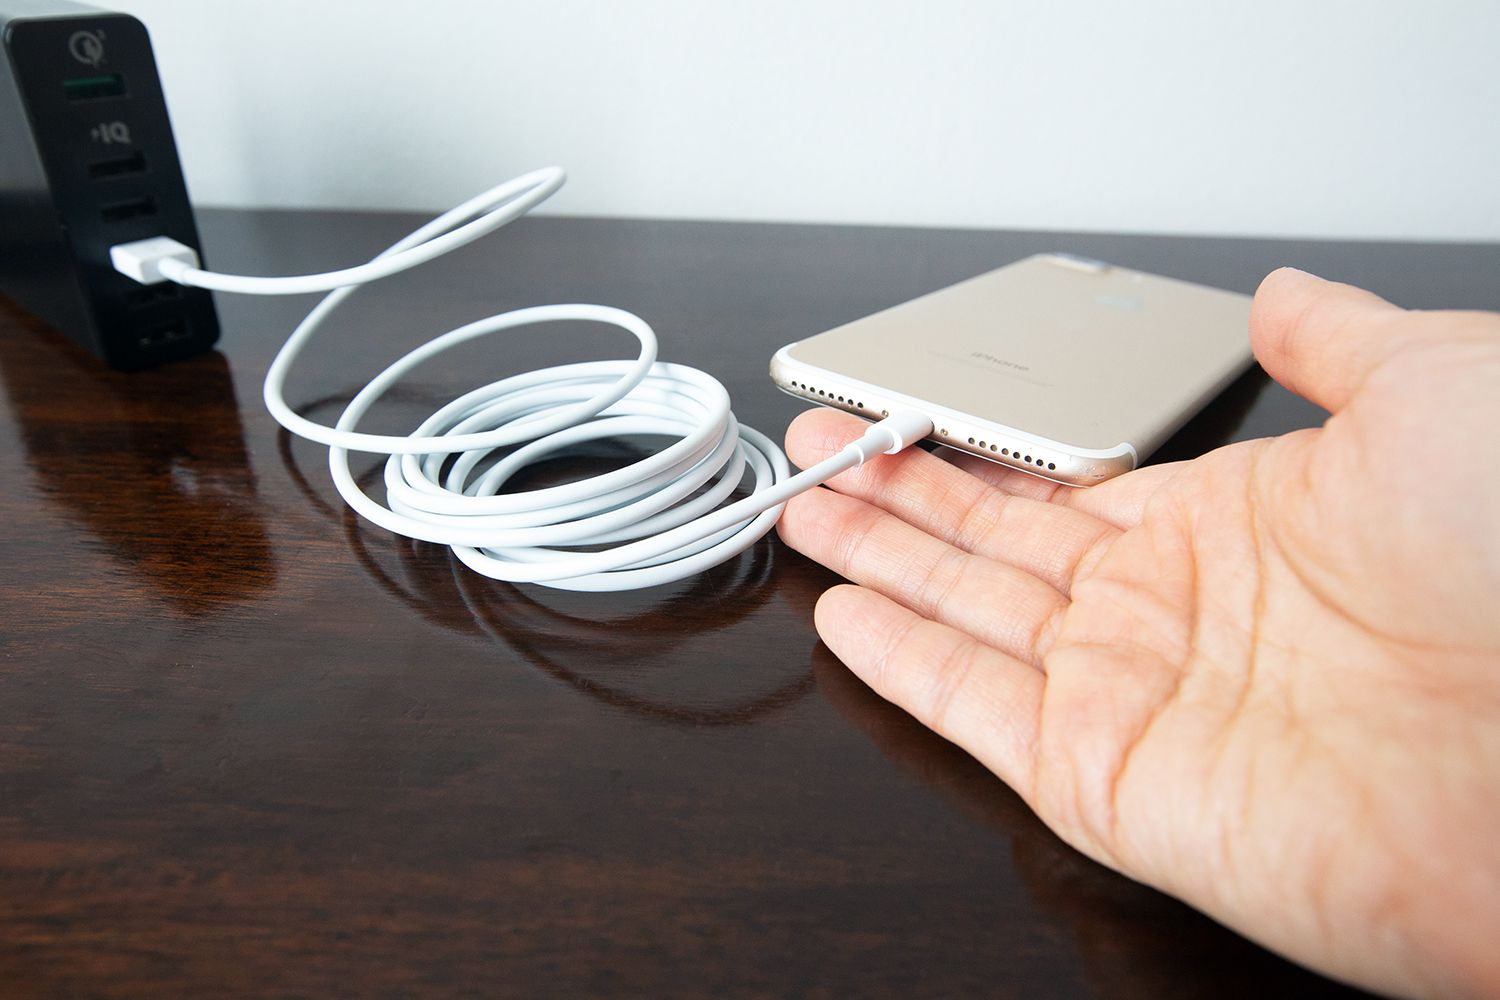 Apple Lightning to USB Cable (6-Foot)